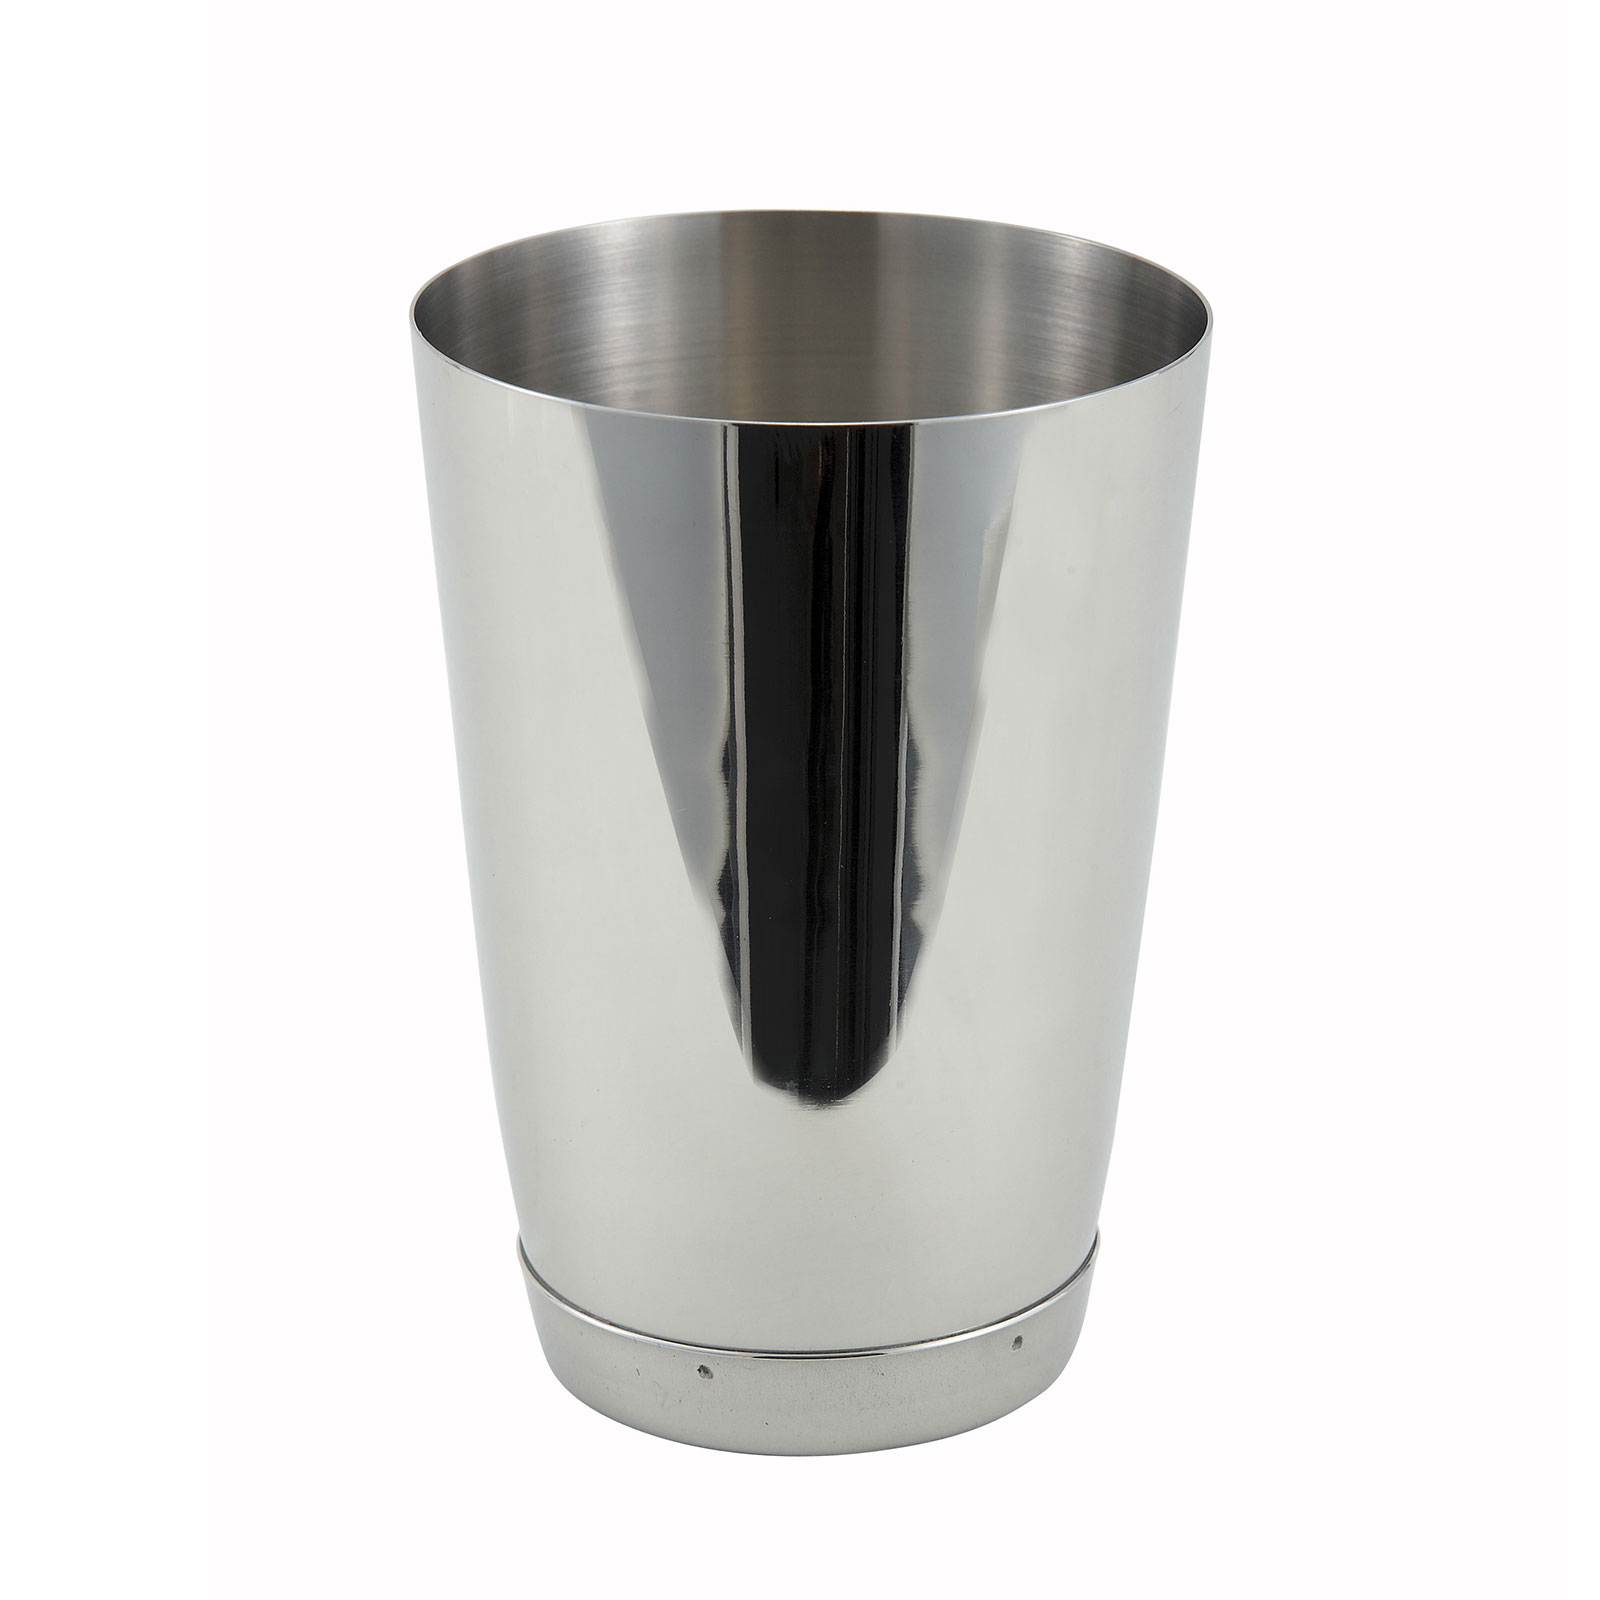 Winco BS-15 bar cocktail shaker